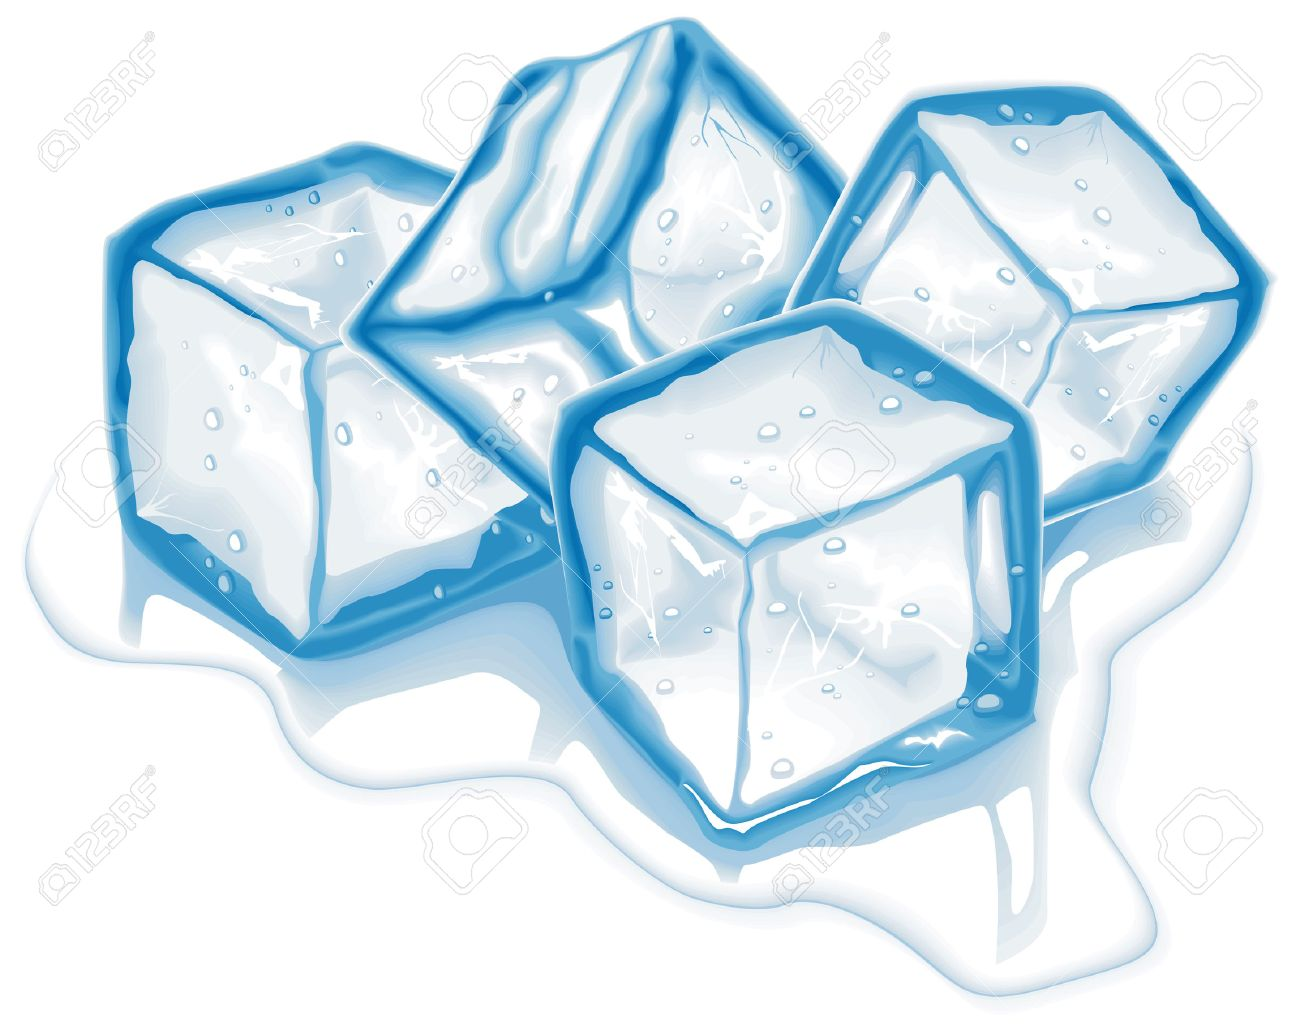 Ice Cubes Drawing 4273492-four-blue-melting-ice